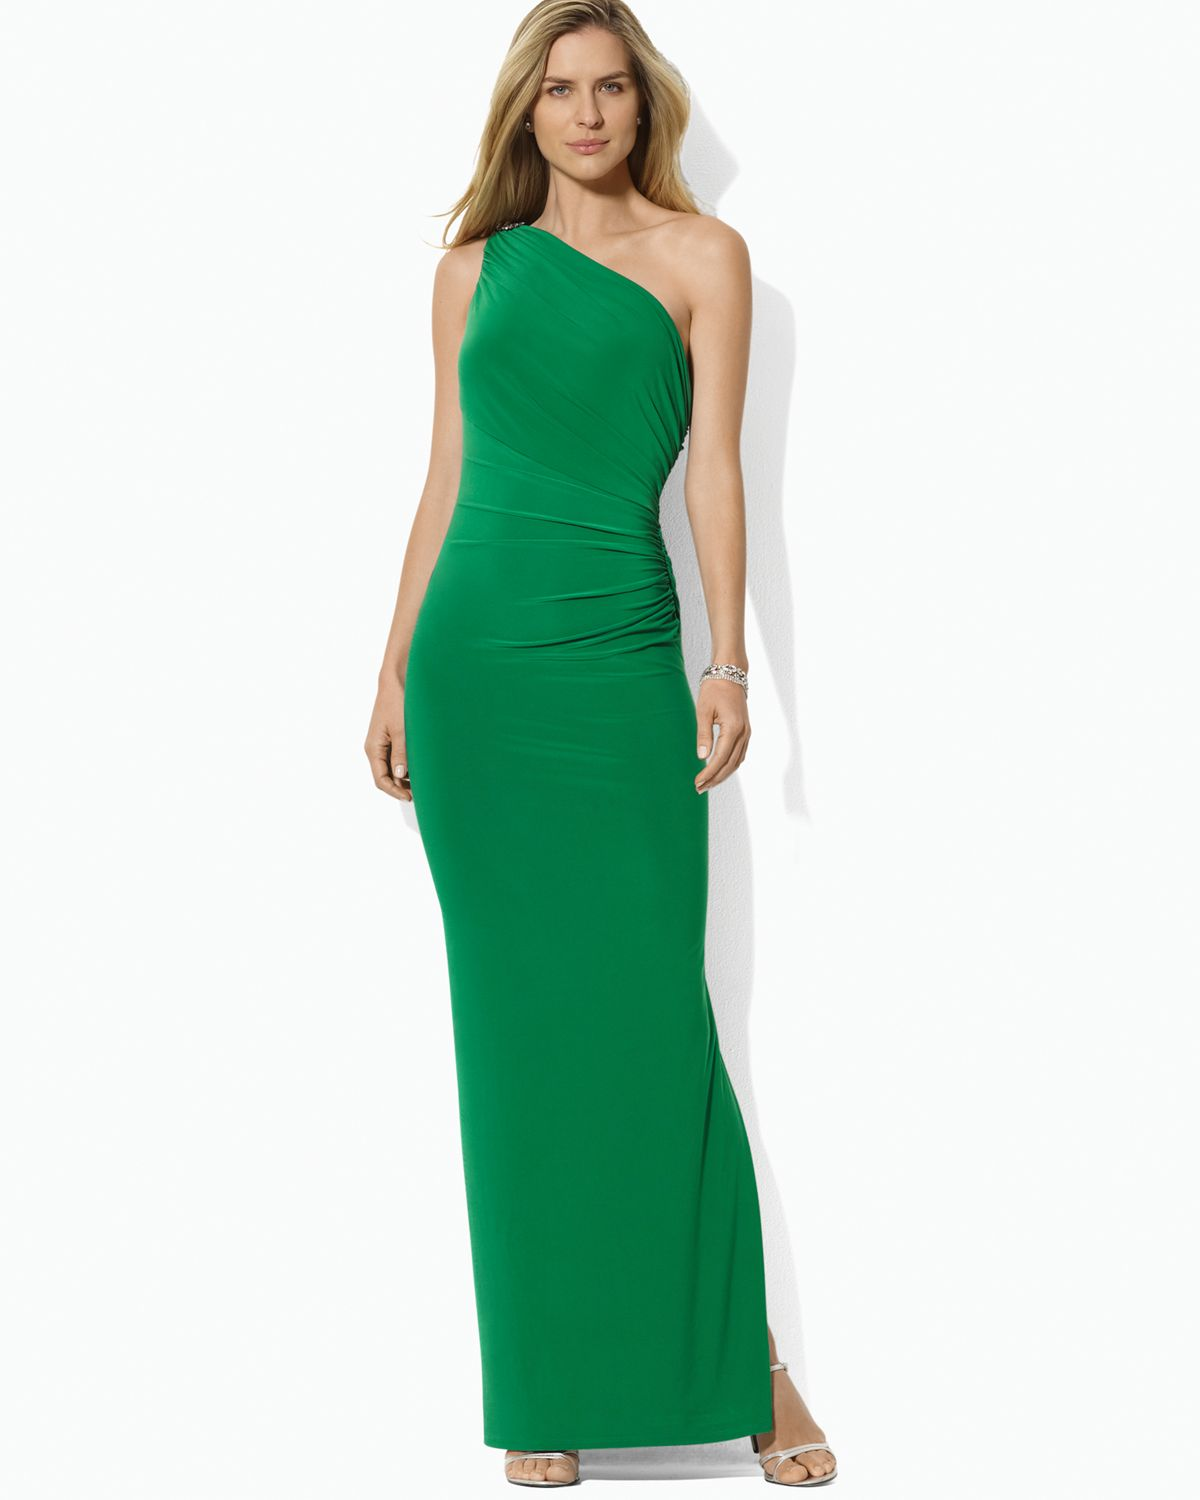 83af761e75 Ralph Lauren Green One Shoulder Gown with Pin